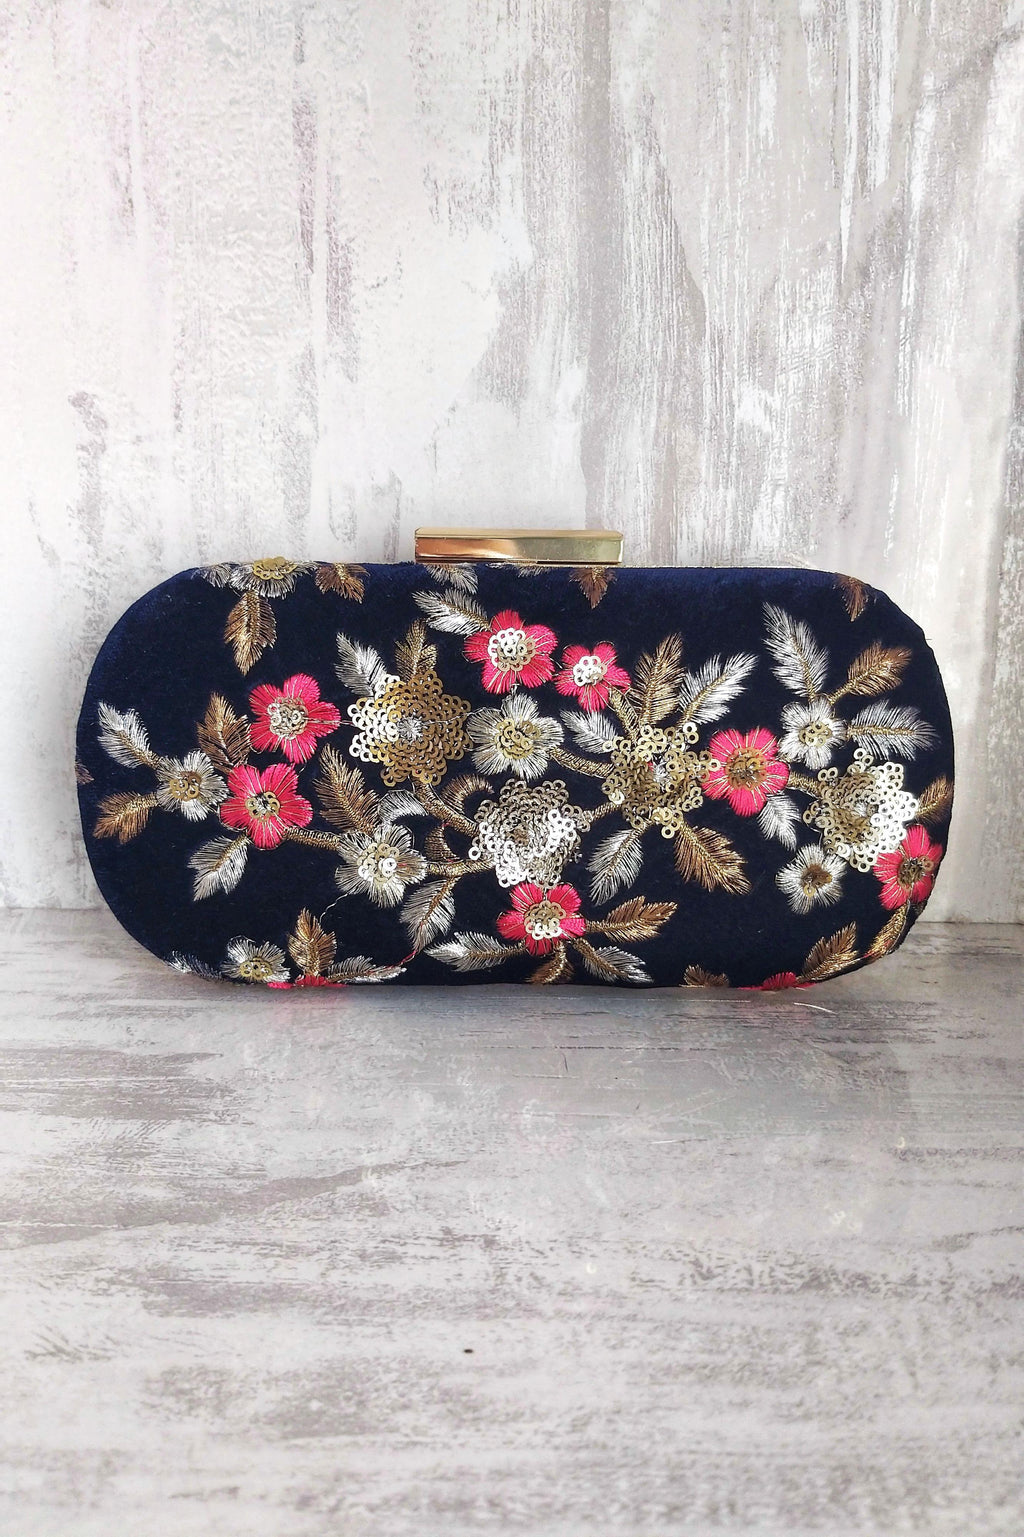 Midnight garden capsule clutch